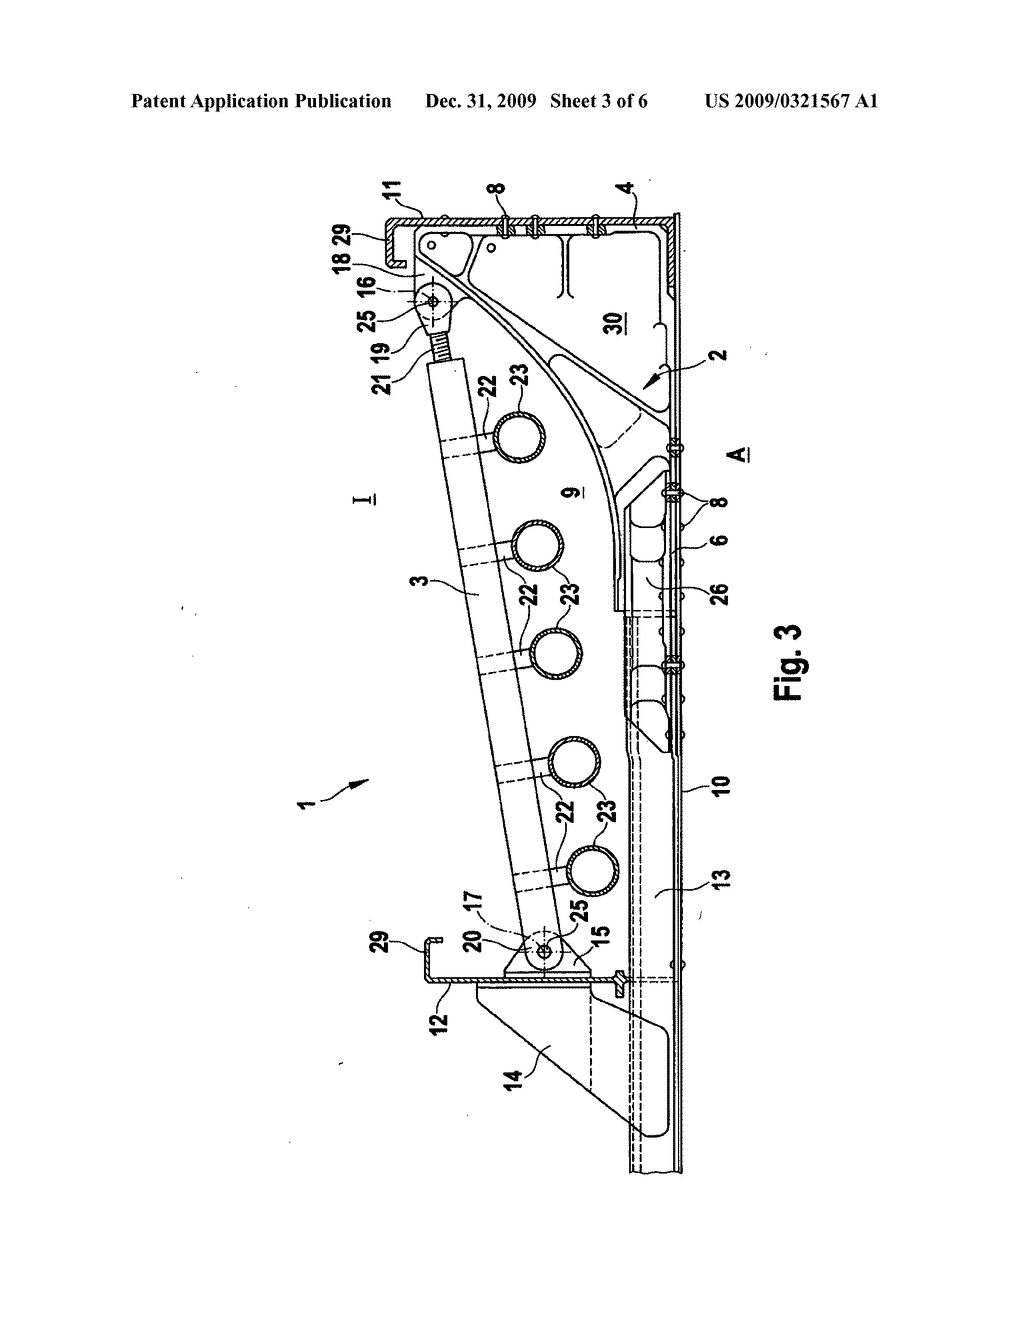 Intercostal For An Aircraft Or Spacecraft Diagram Schematic And Note 2 Circuit Image 04